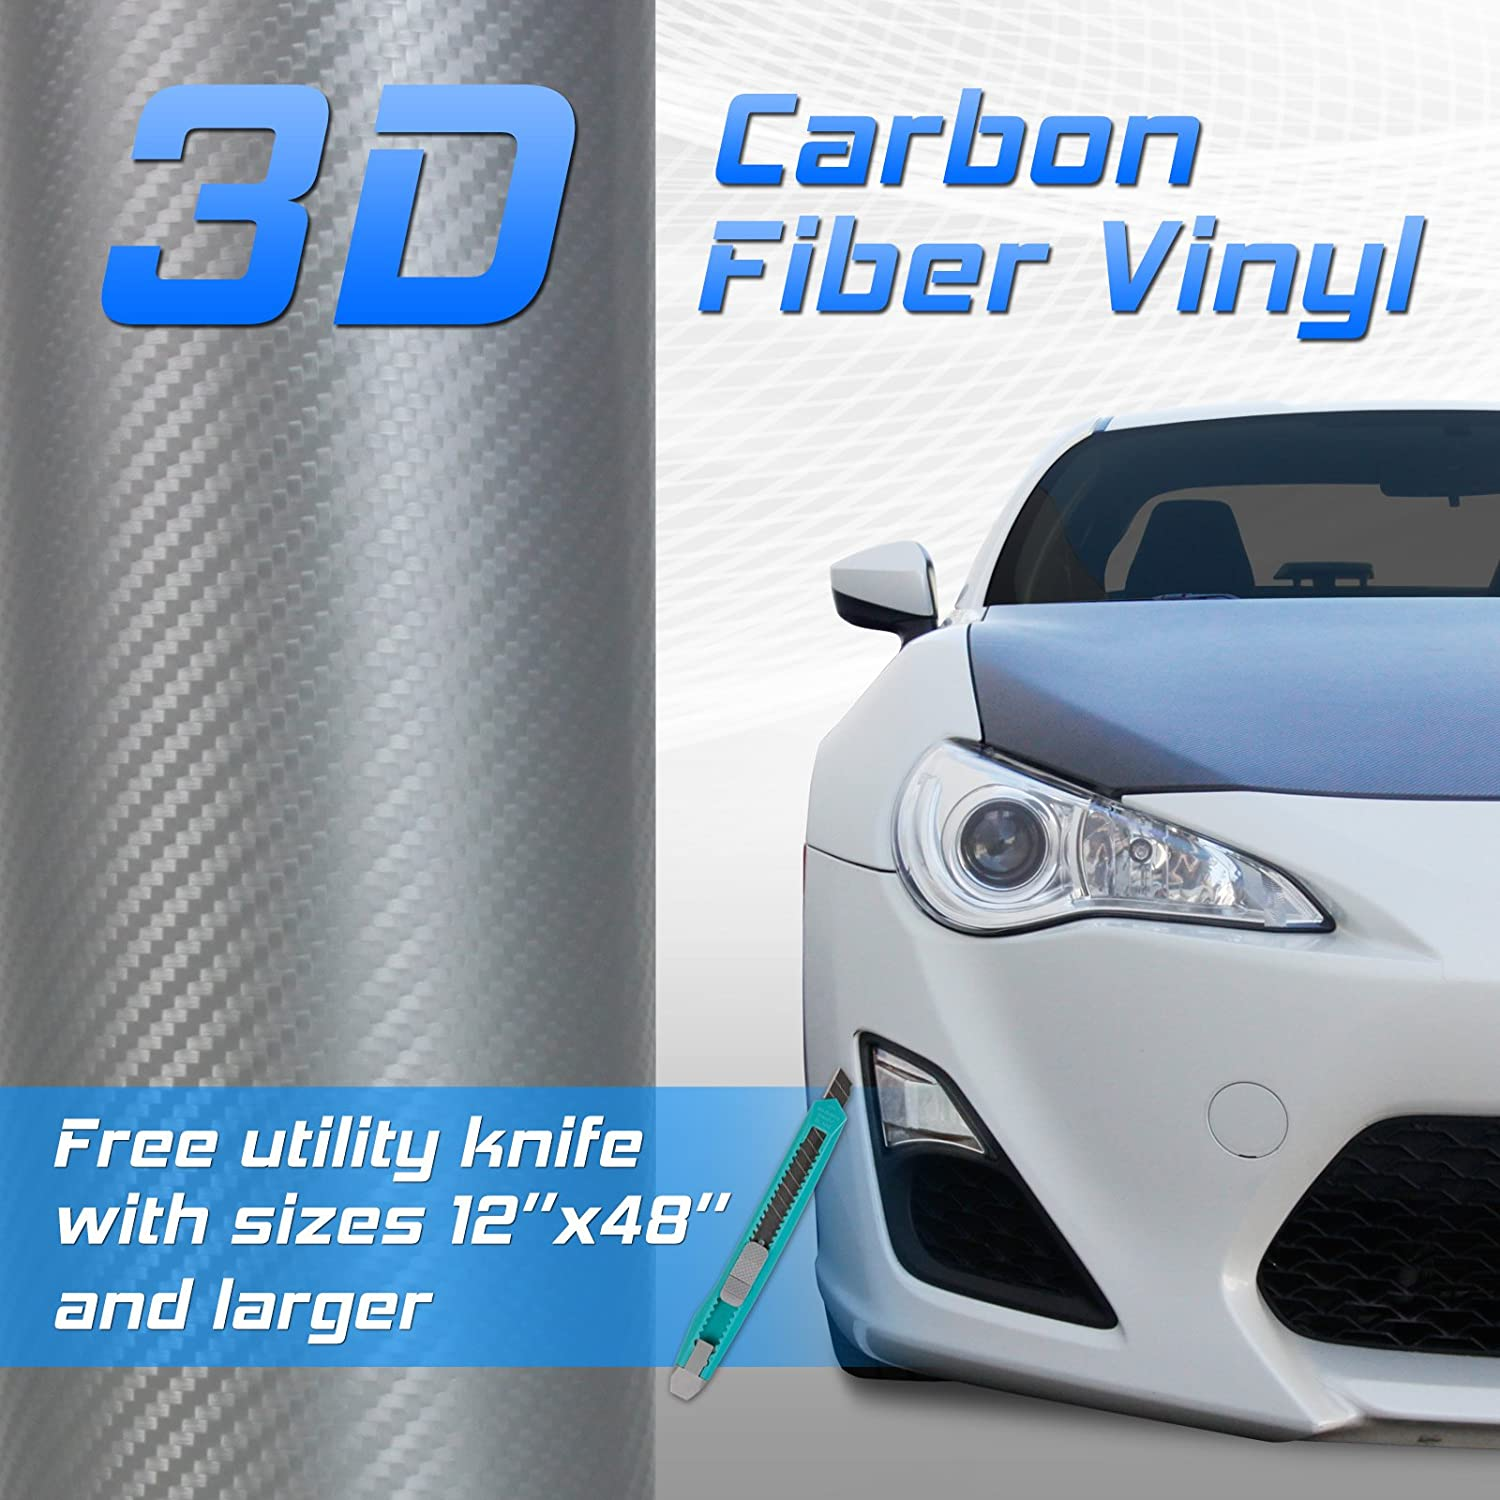 24 by 48 inches 3D Twill Weave White Silver Carbon Fiber Vinyl Sheet iJDMTOY Auto Accessories (2x4)-AA2035